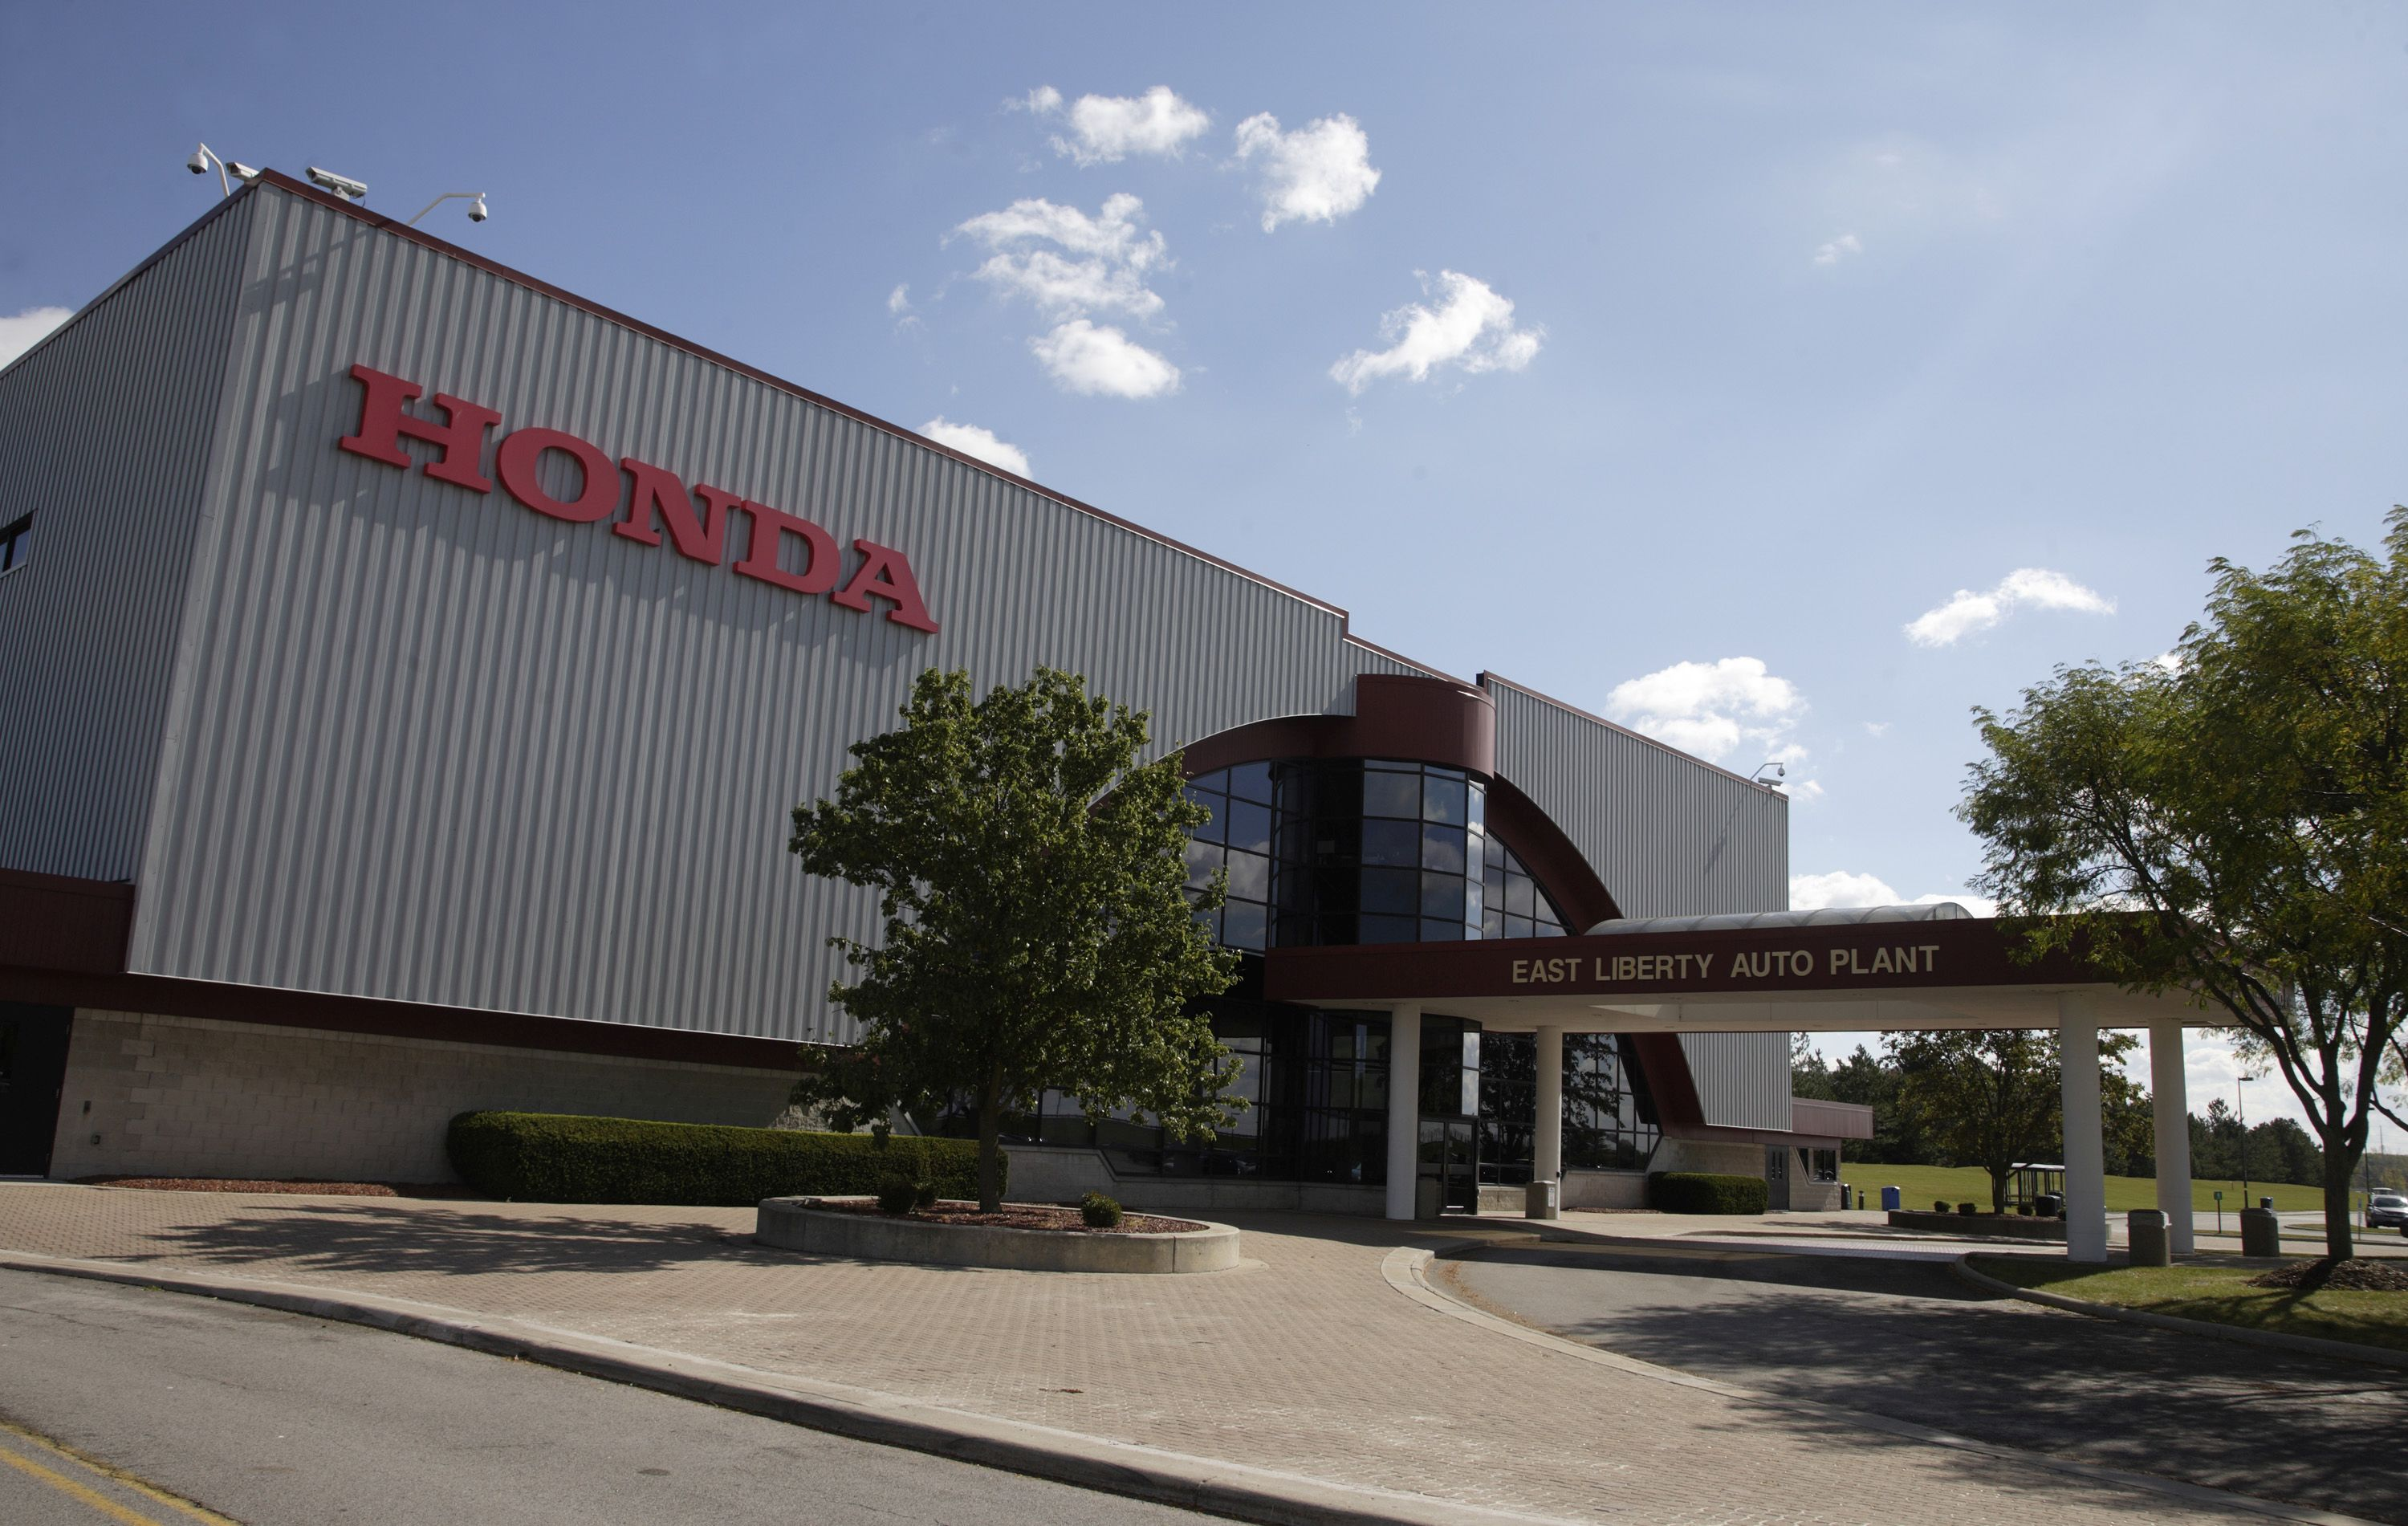 Since Opening In December 1989 Hondas East Liberty Auto Plant Has Manufactured More Than 45 Million Honda And Acura Vehicles The 21 Square Foot